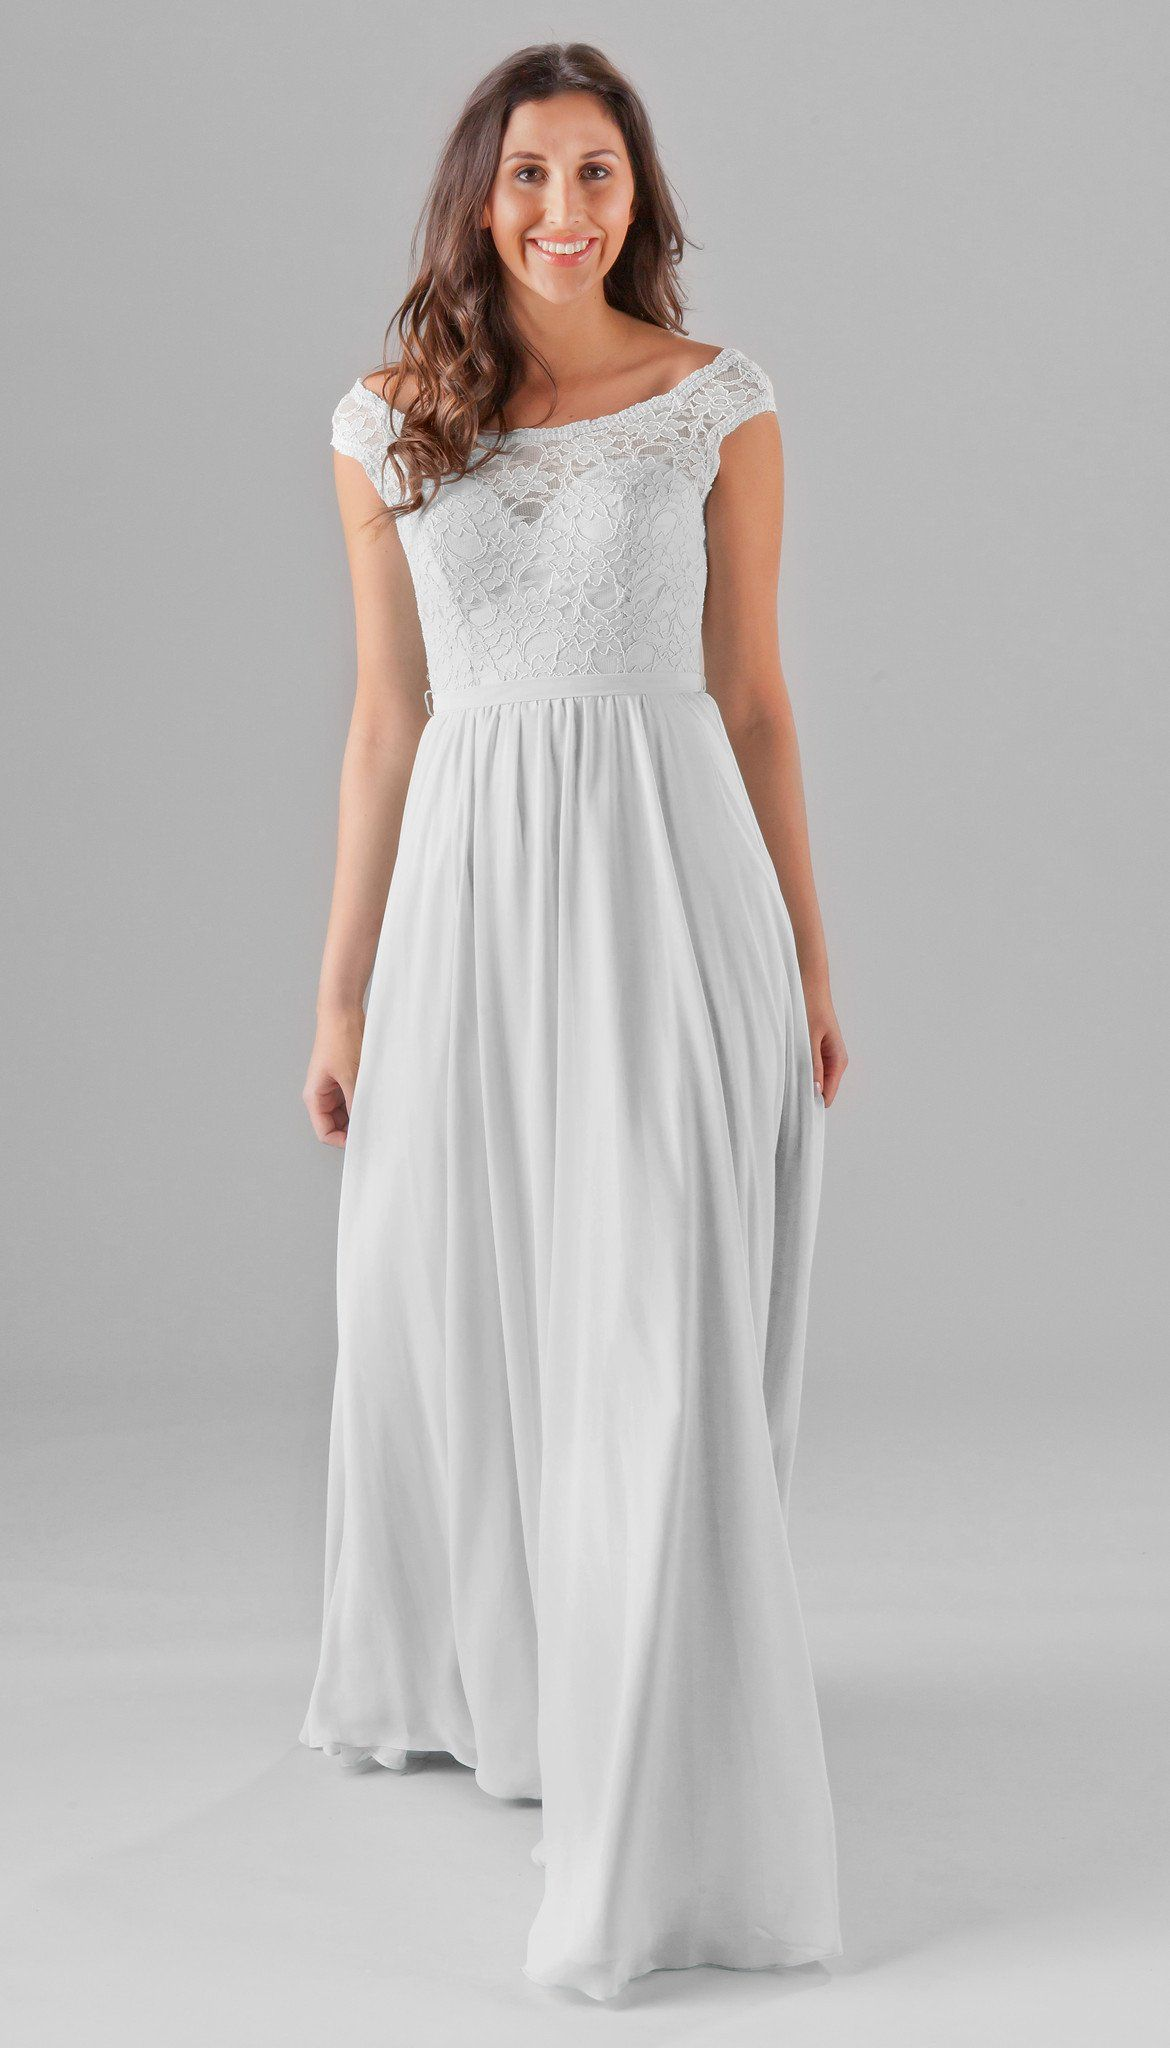 Lola | Classy short dresses, Bridal gowns and Chiffon wedding dresses